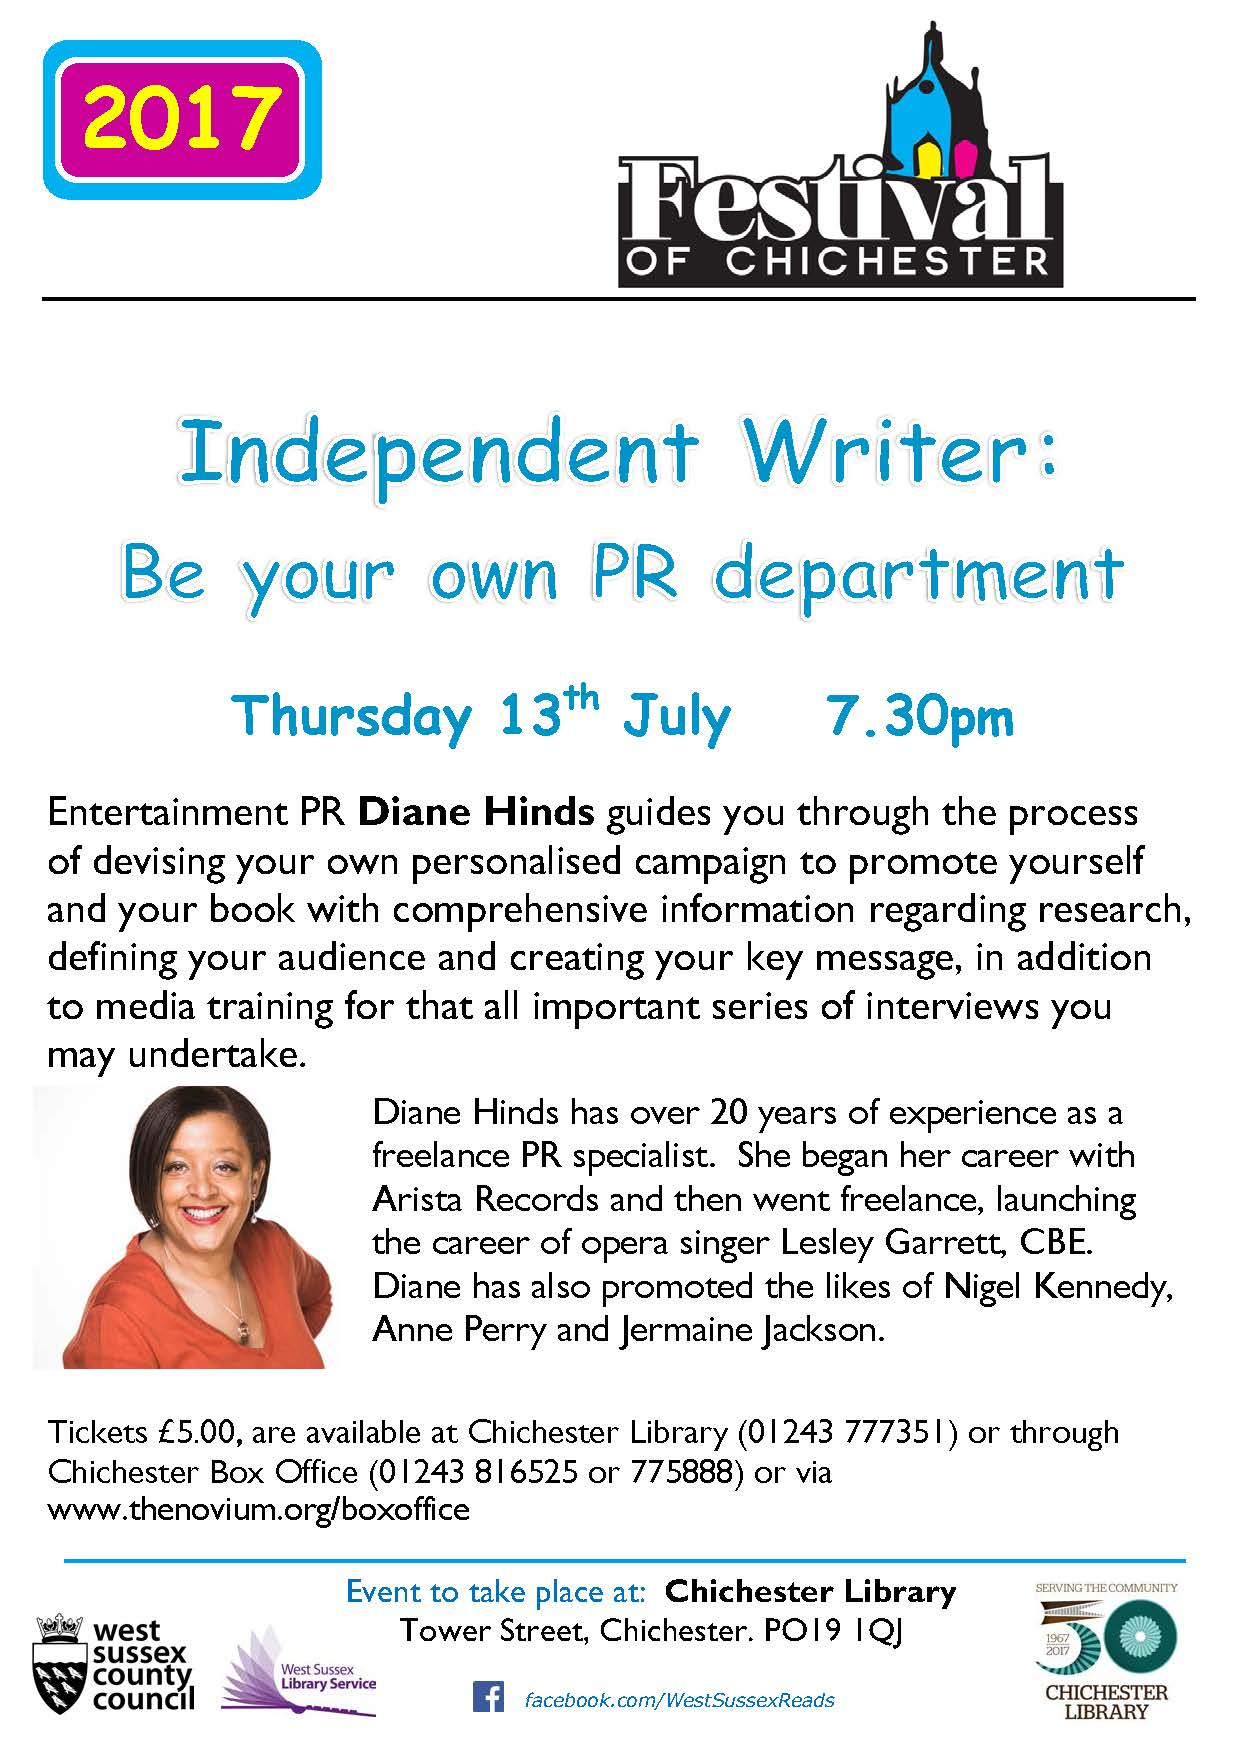 Adult - Independent Writer event